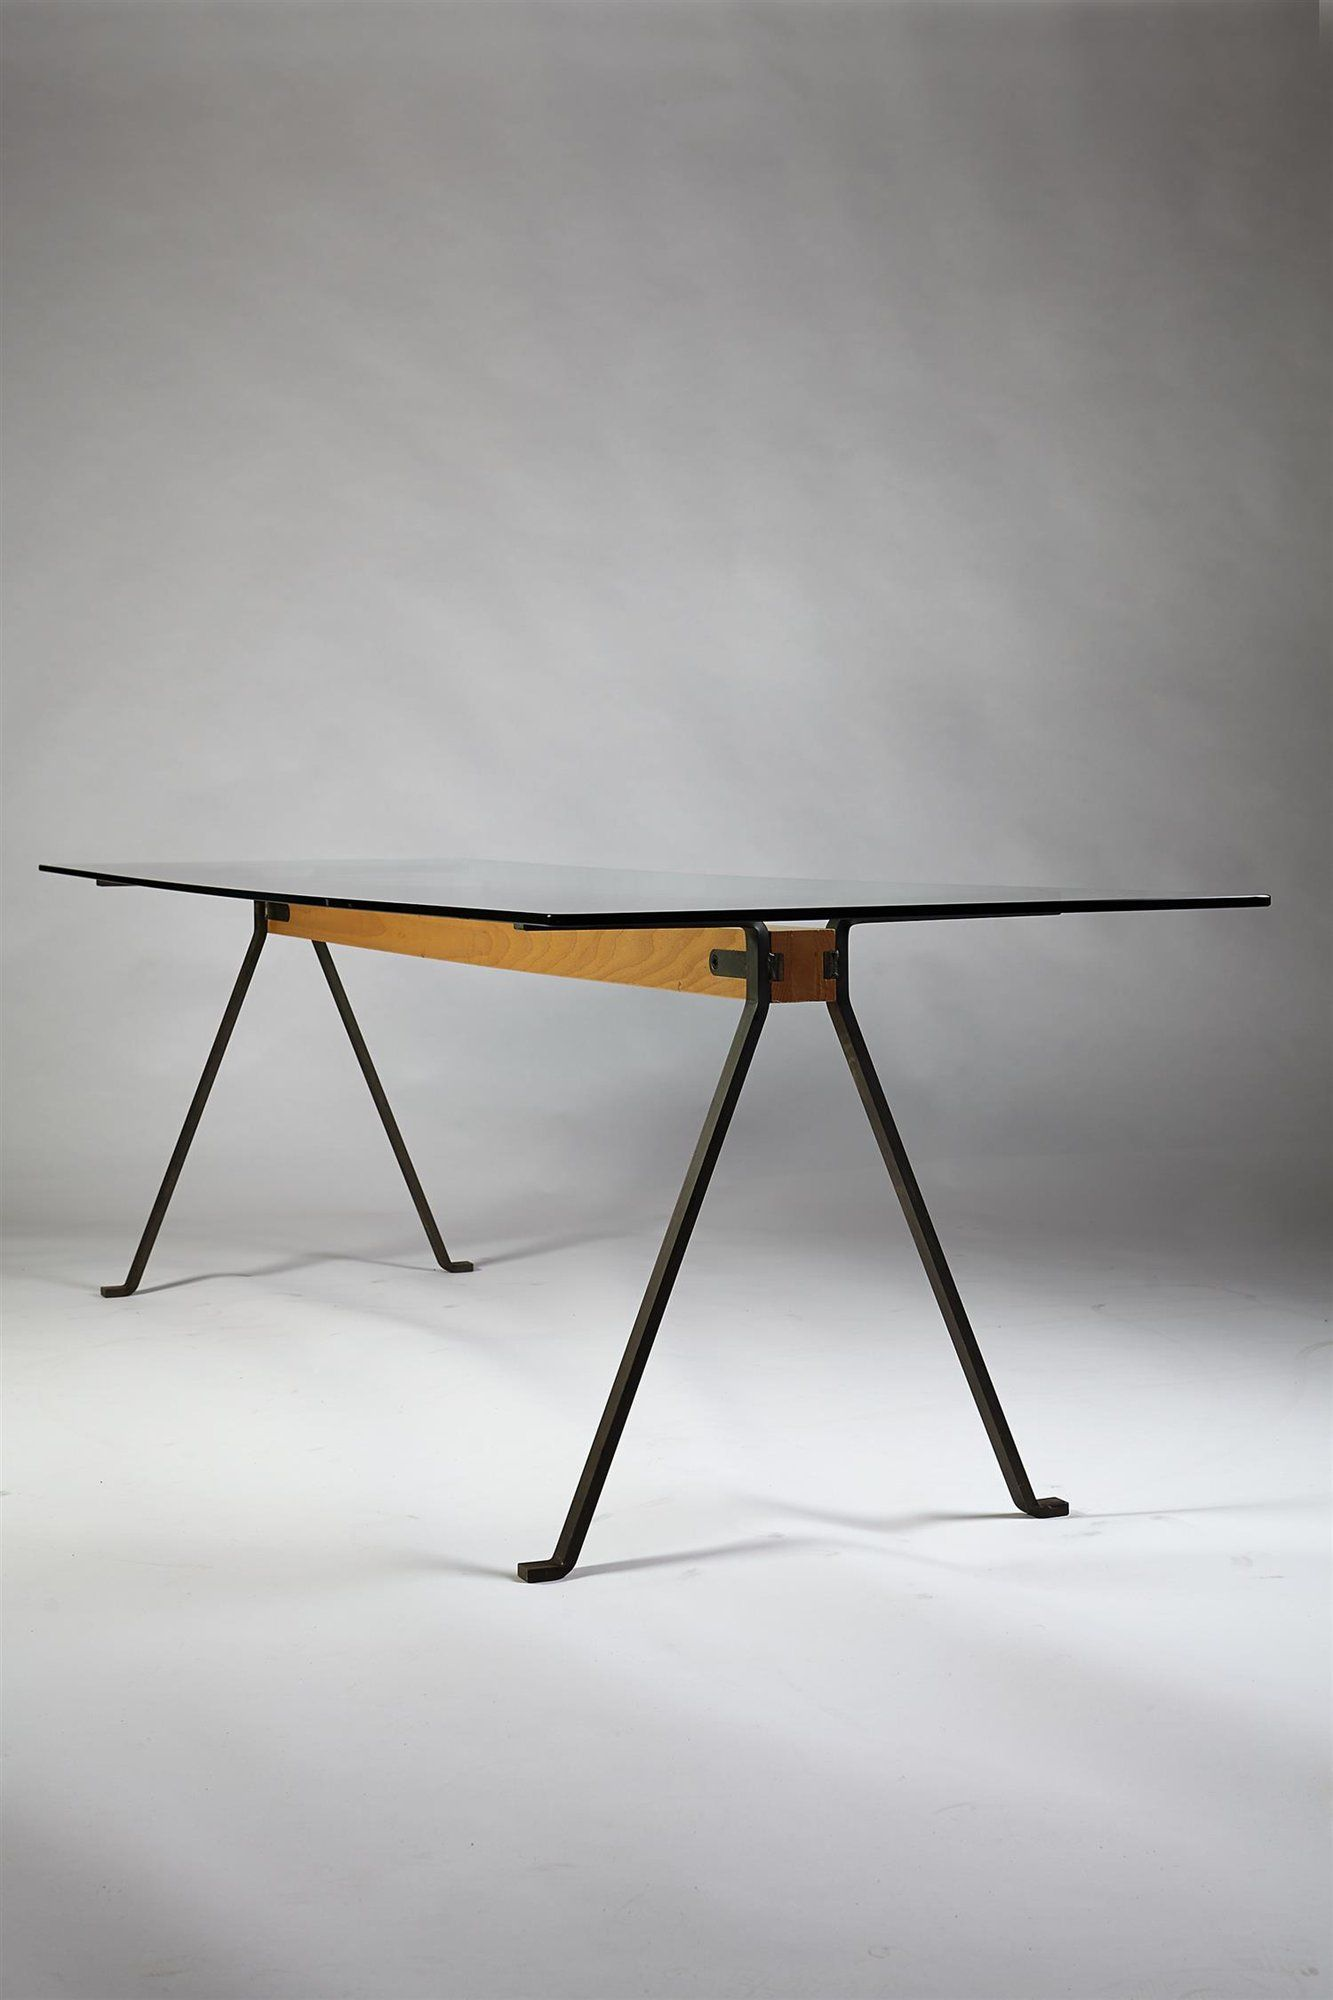 Frate dining table designed by enzo mari for driade for Design tisch enzo